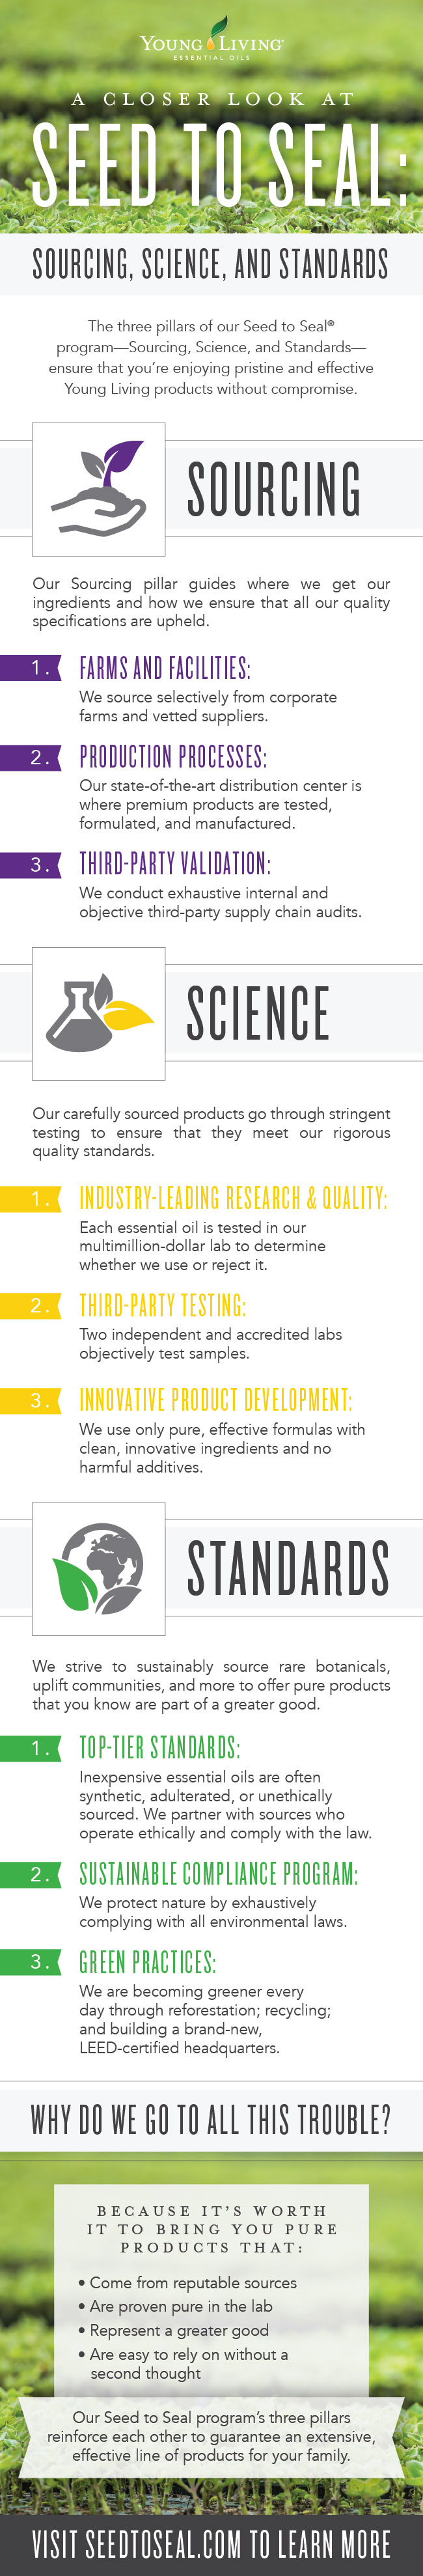 A closer look at Seed to Seal: Sourcing, Science, and Standards Infographic